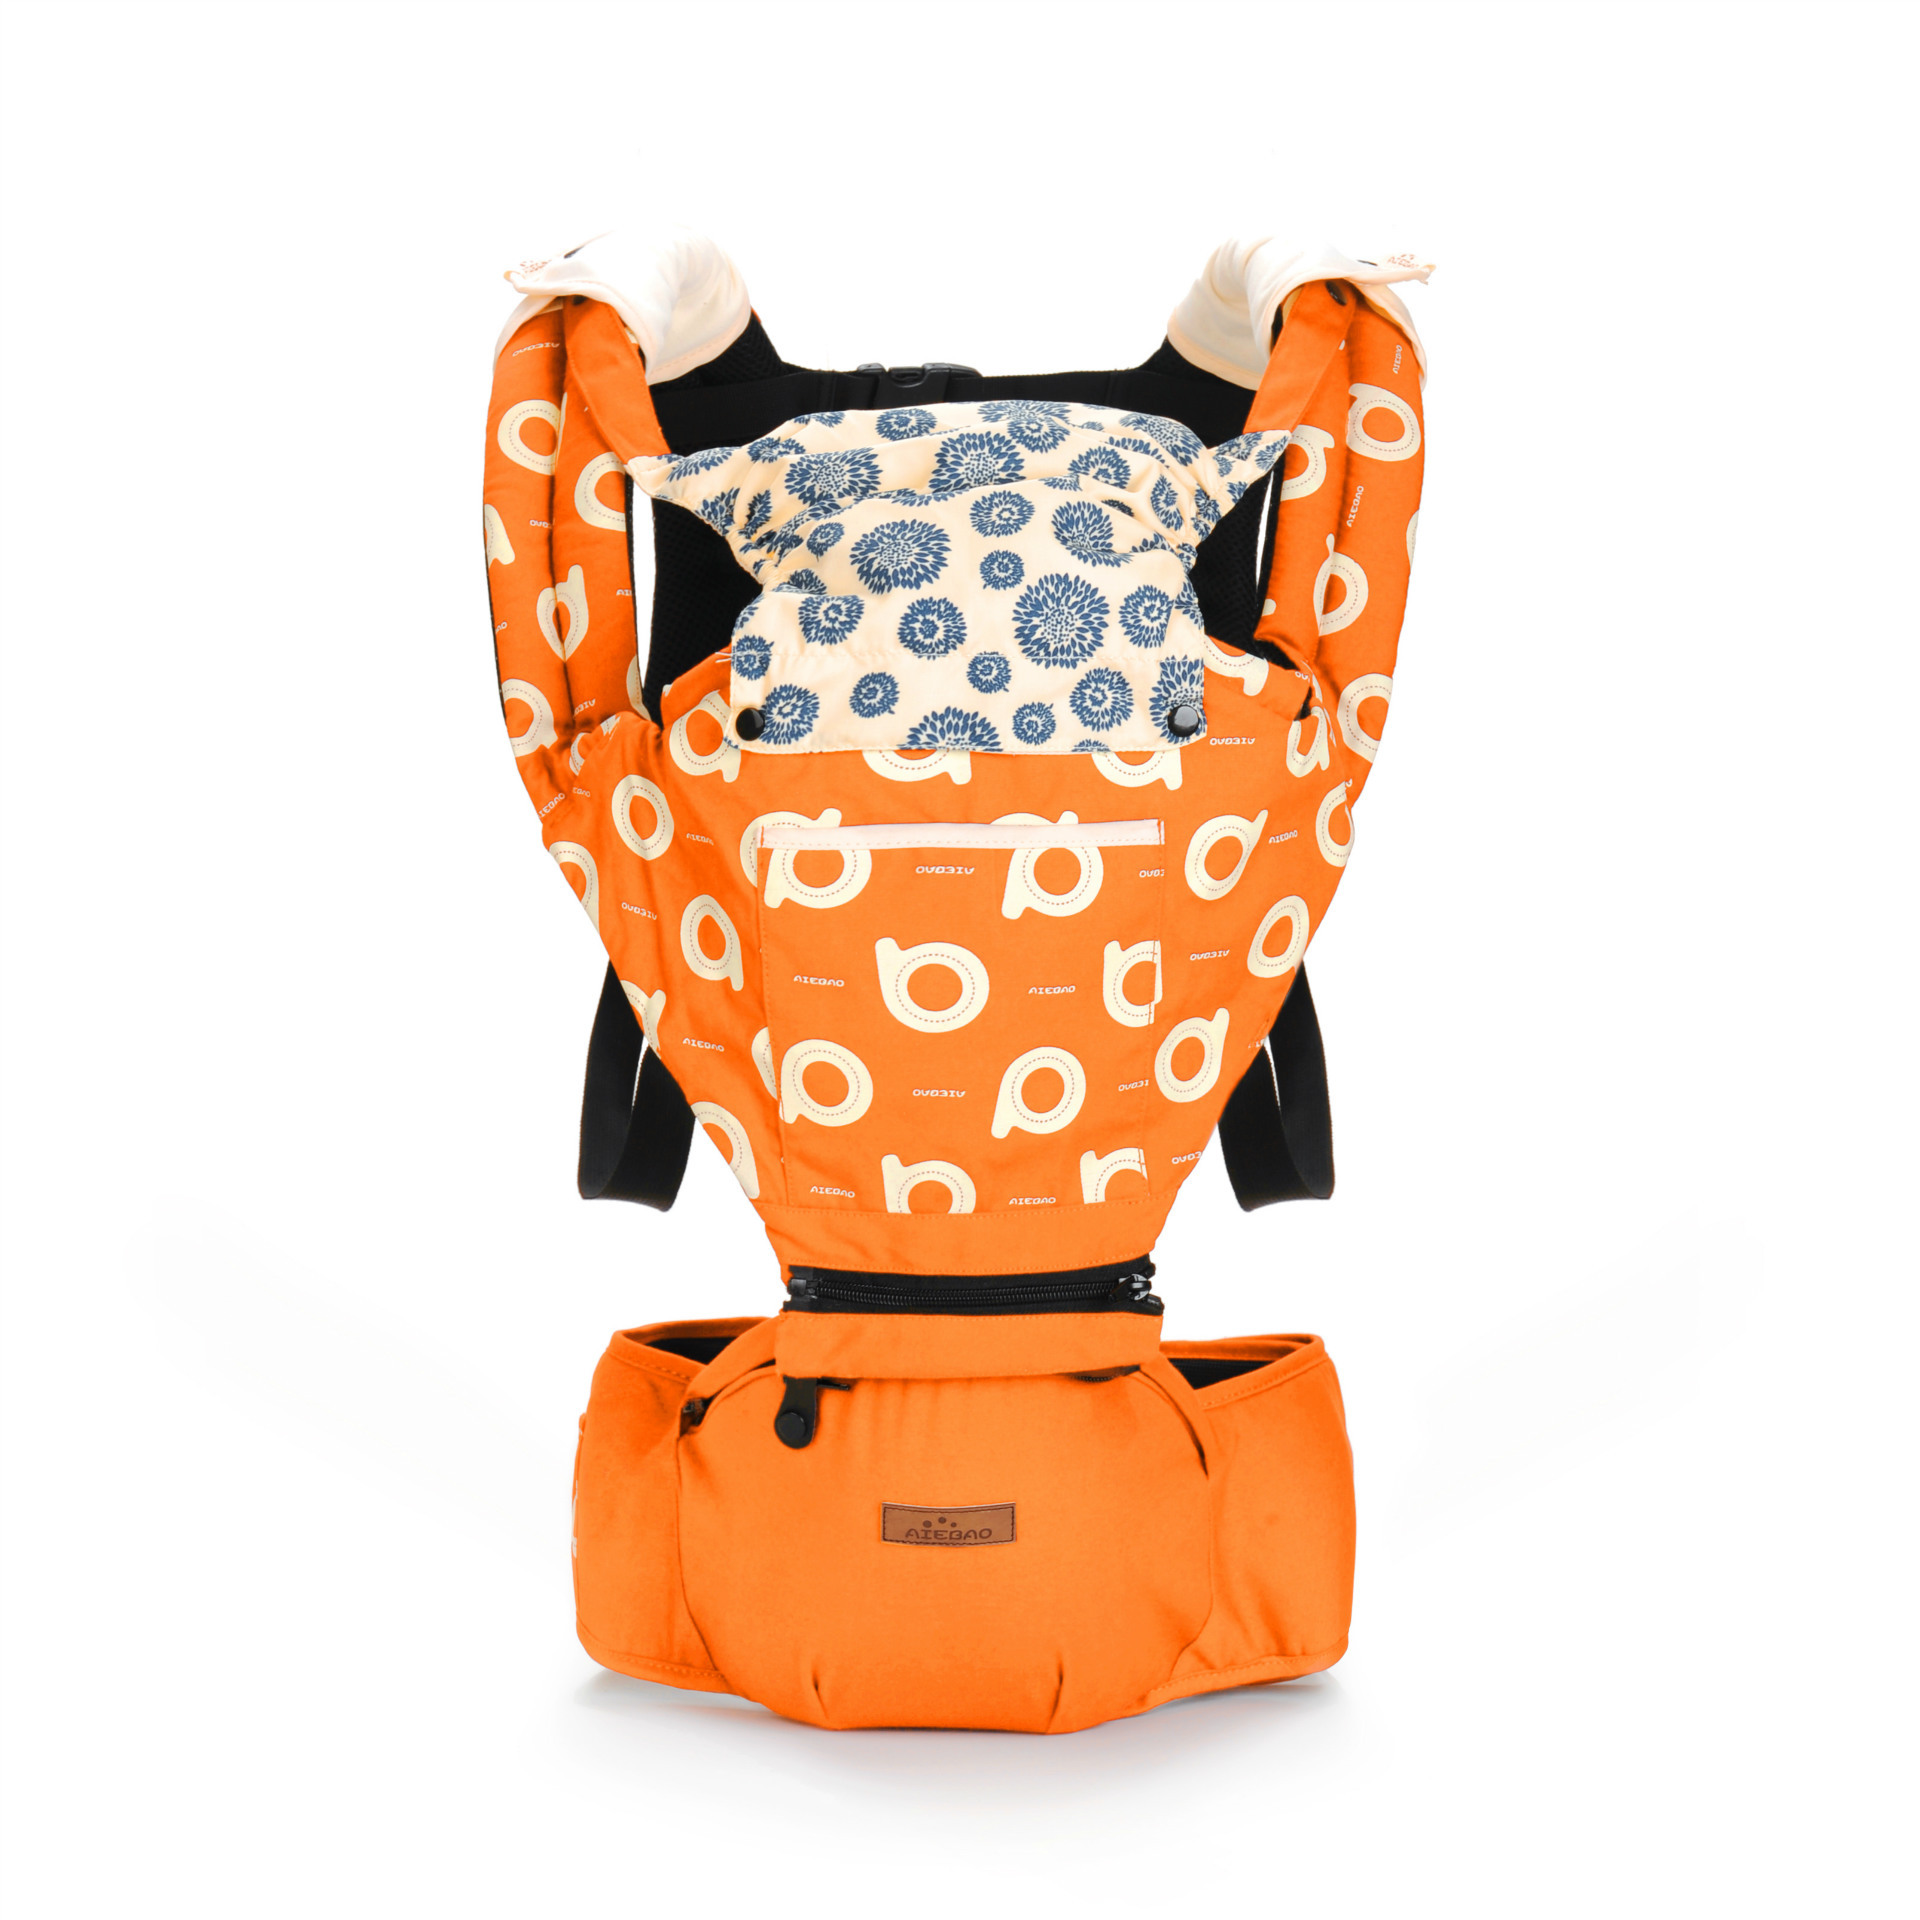 Multifunction Baby Carrier Backpack Breathable Cotton Baby Carrier Hip seat Adjustable Baby Kids Infant Wrap Sling With Hood